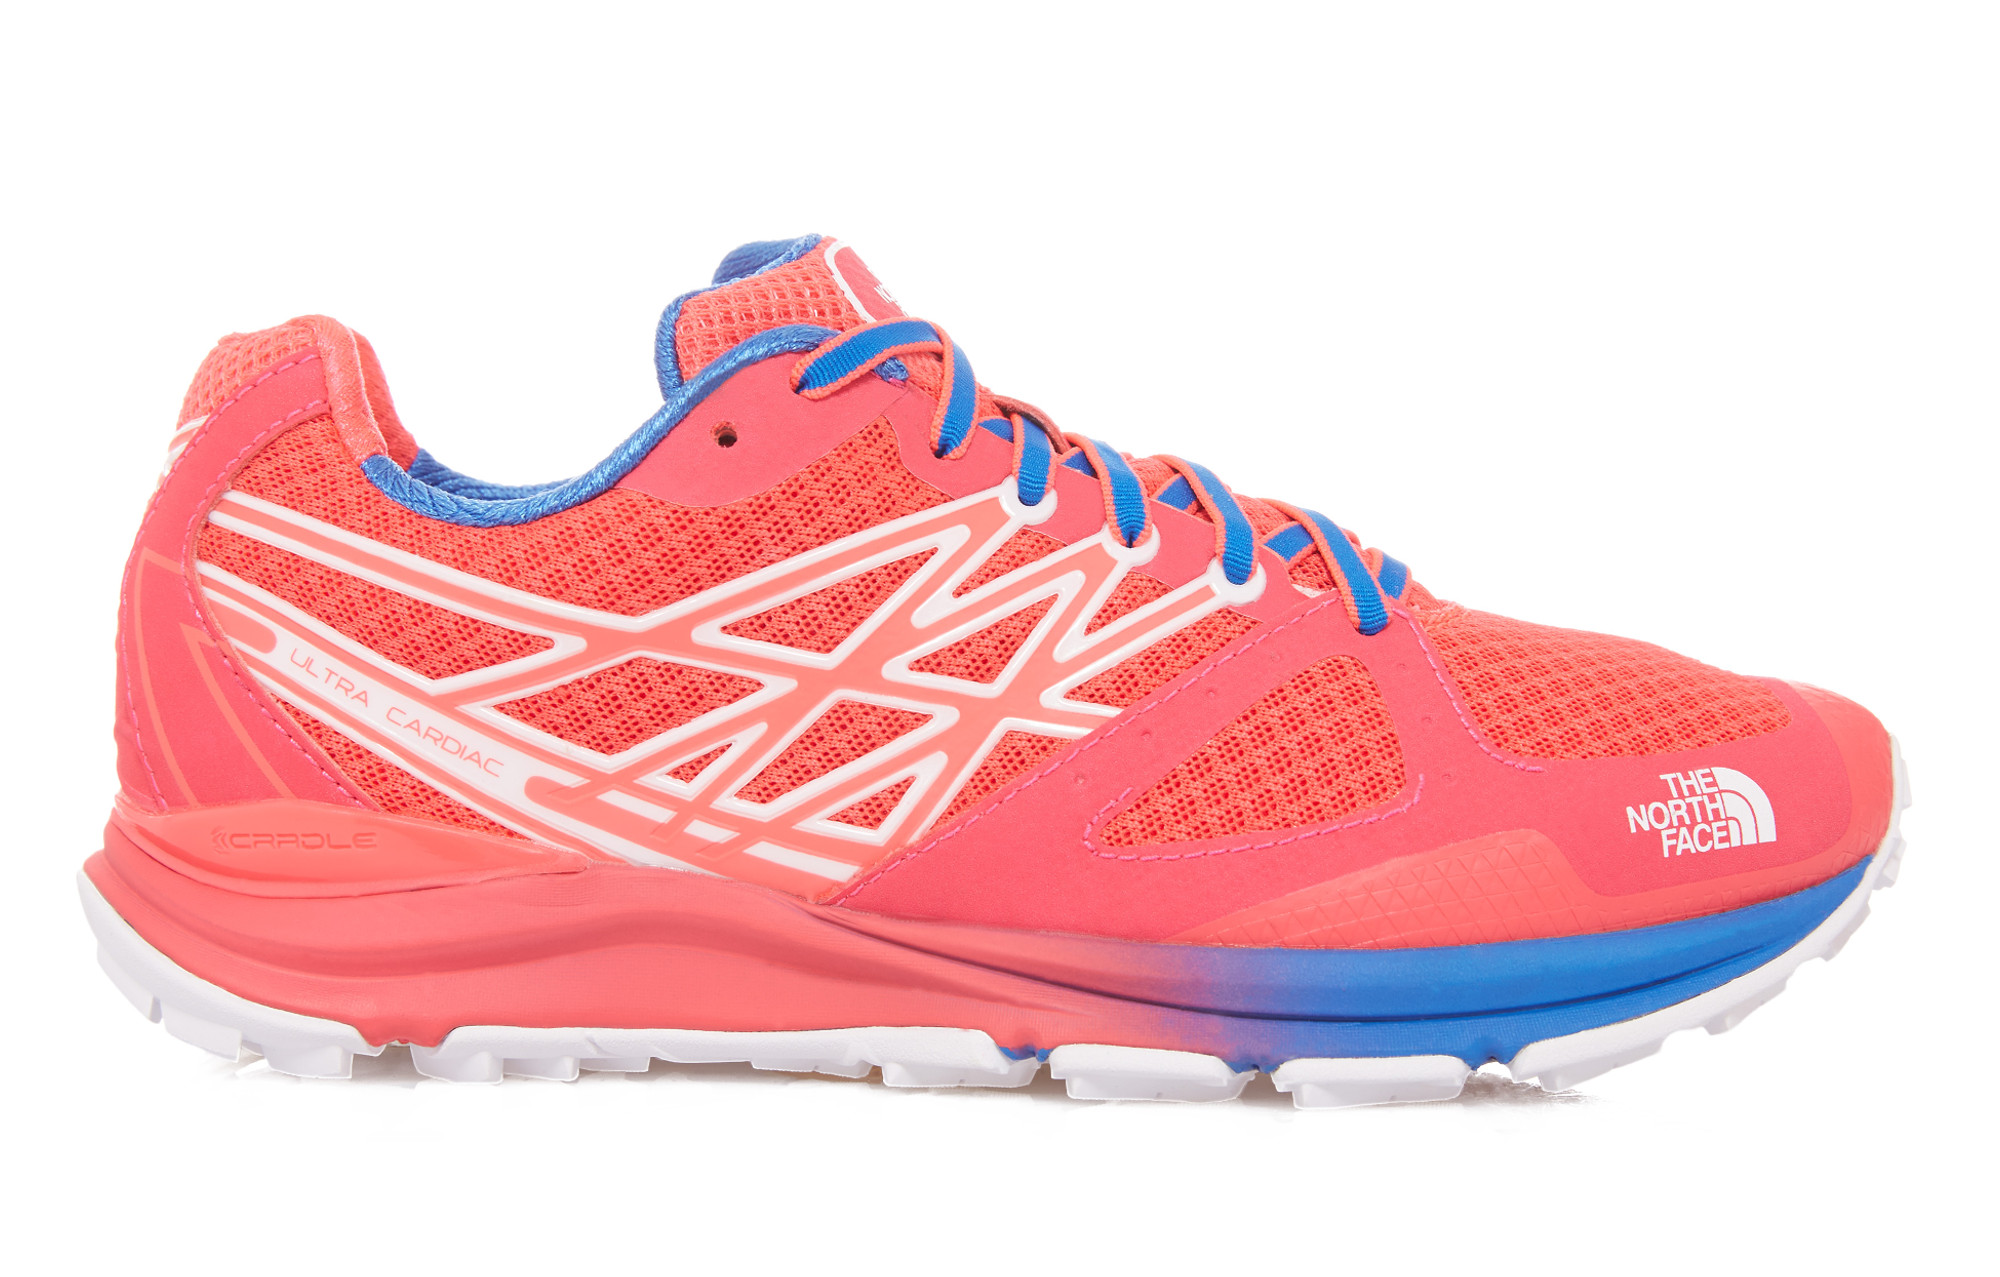 ac1ff297c THE NORTH FACE Shoes ULTRA CARDIAC Pink Women